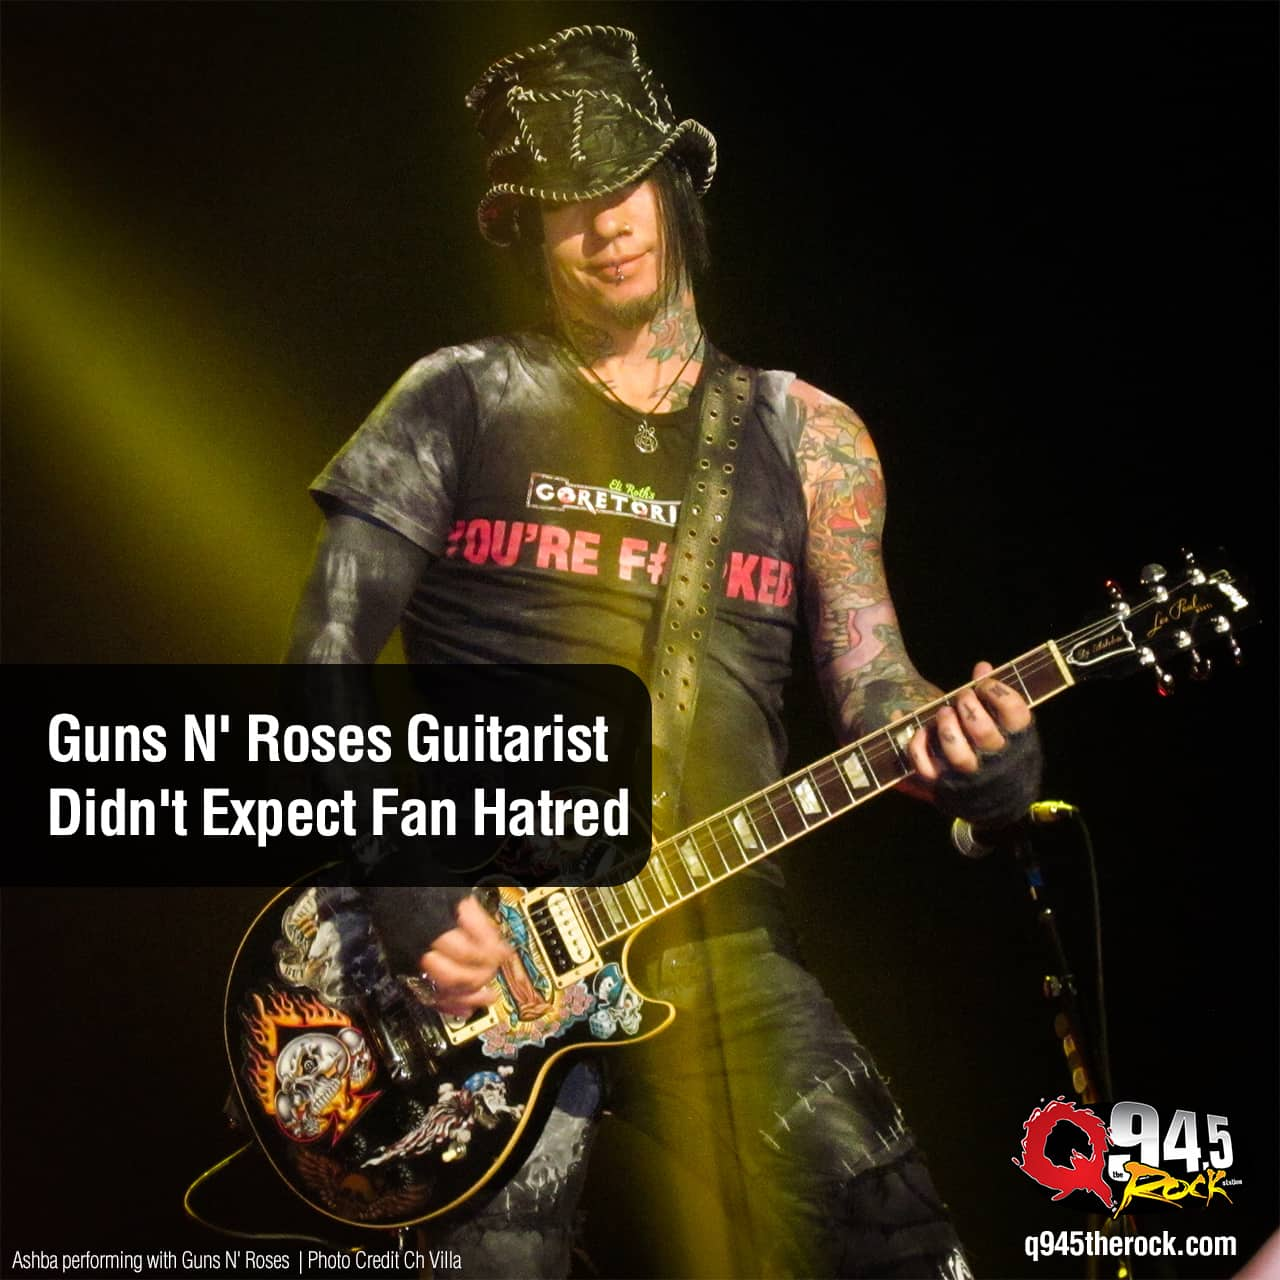 Guns N' Roses Guitarist Didn't Expect Fan Hatred